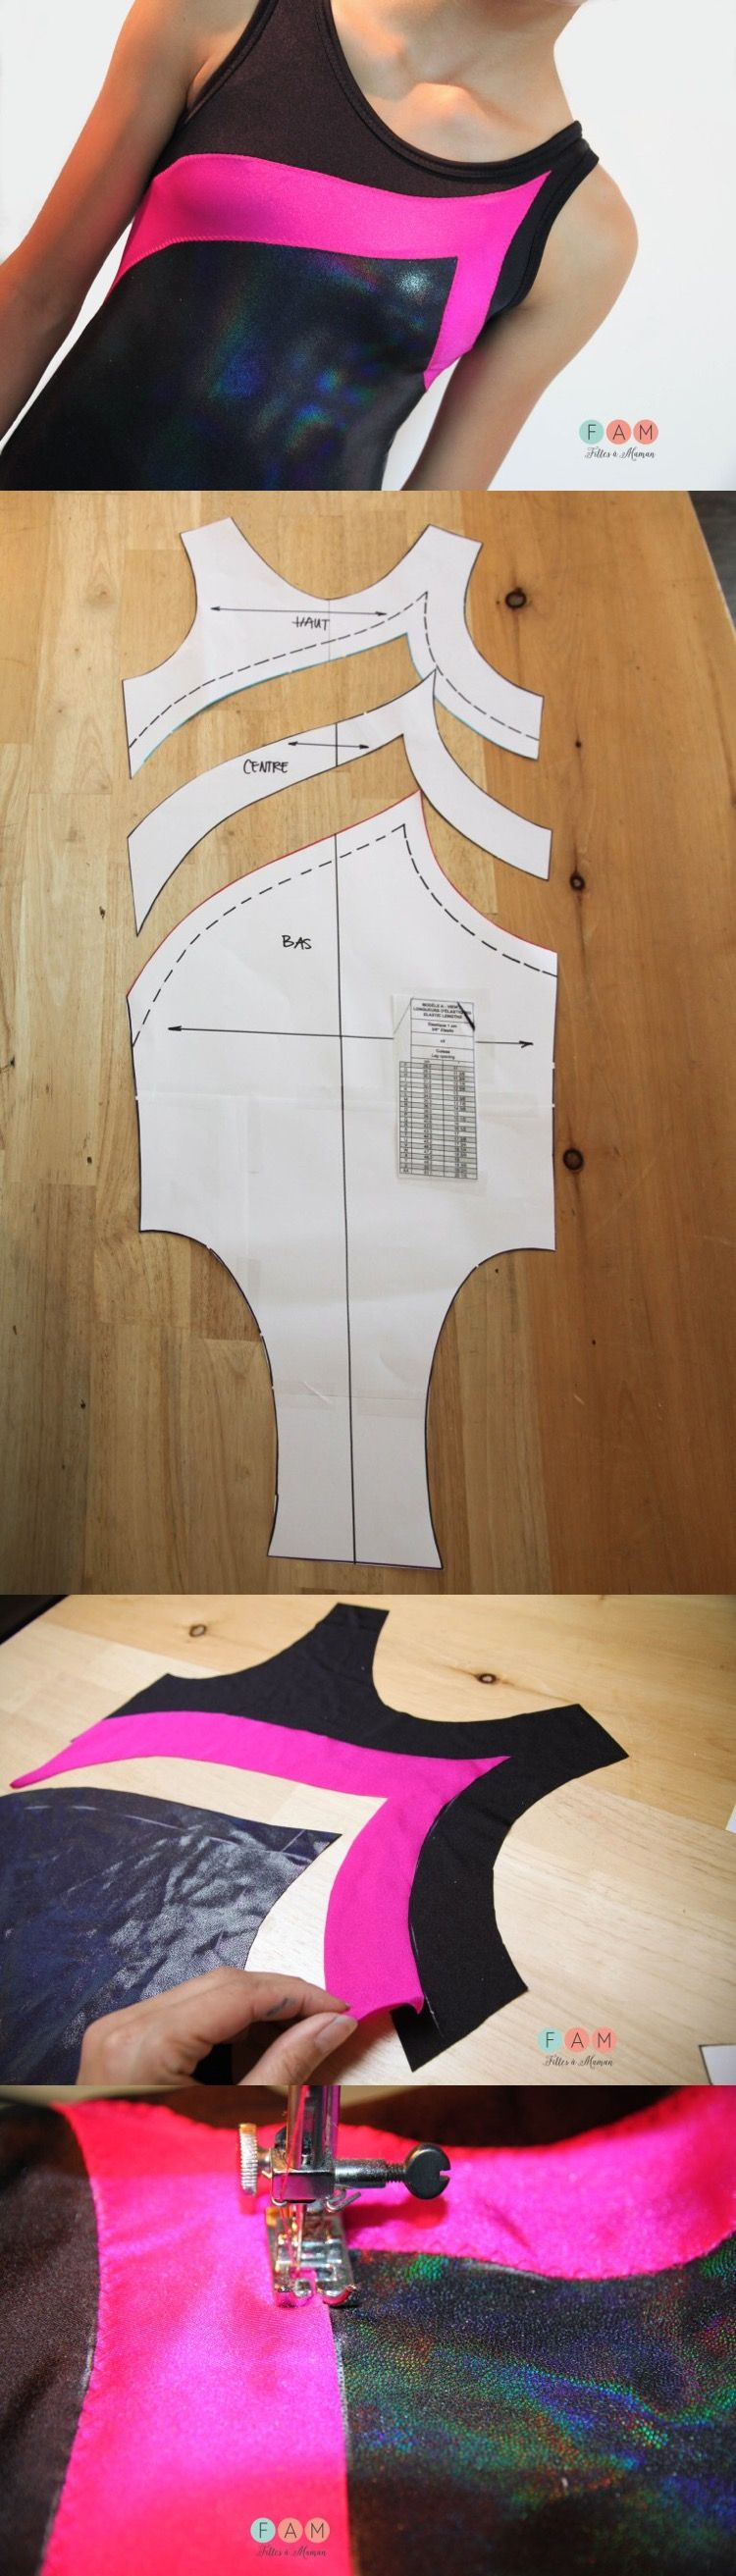 How to colorblock an existing leotard or other pattern sewing how to colorblock an existing leotard or other pattern sewing tutorial jeuxipadfo Image collections